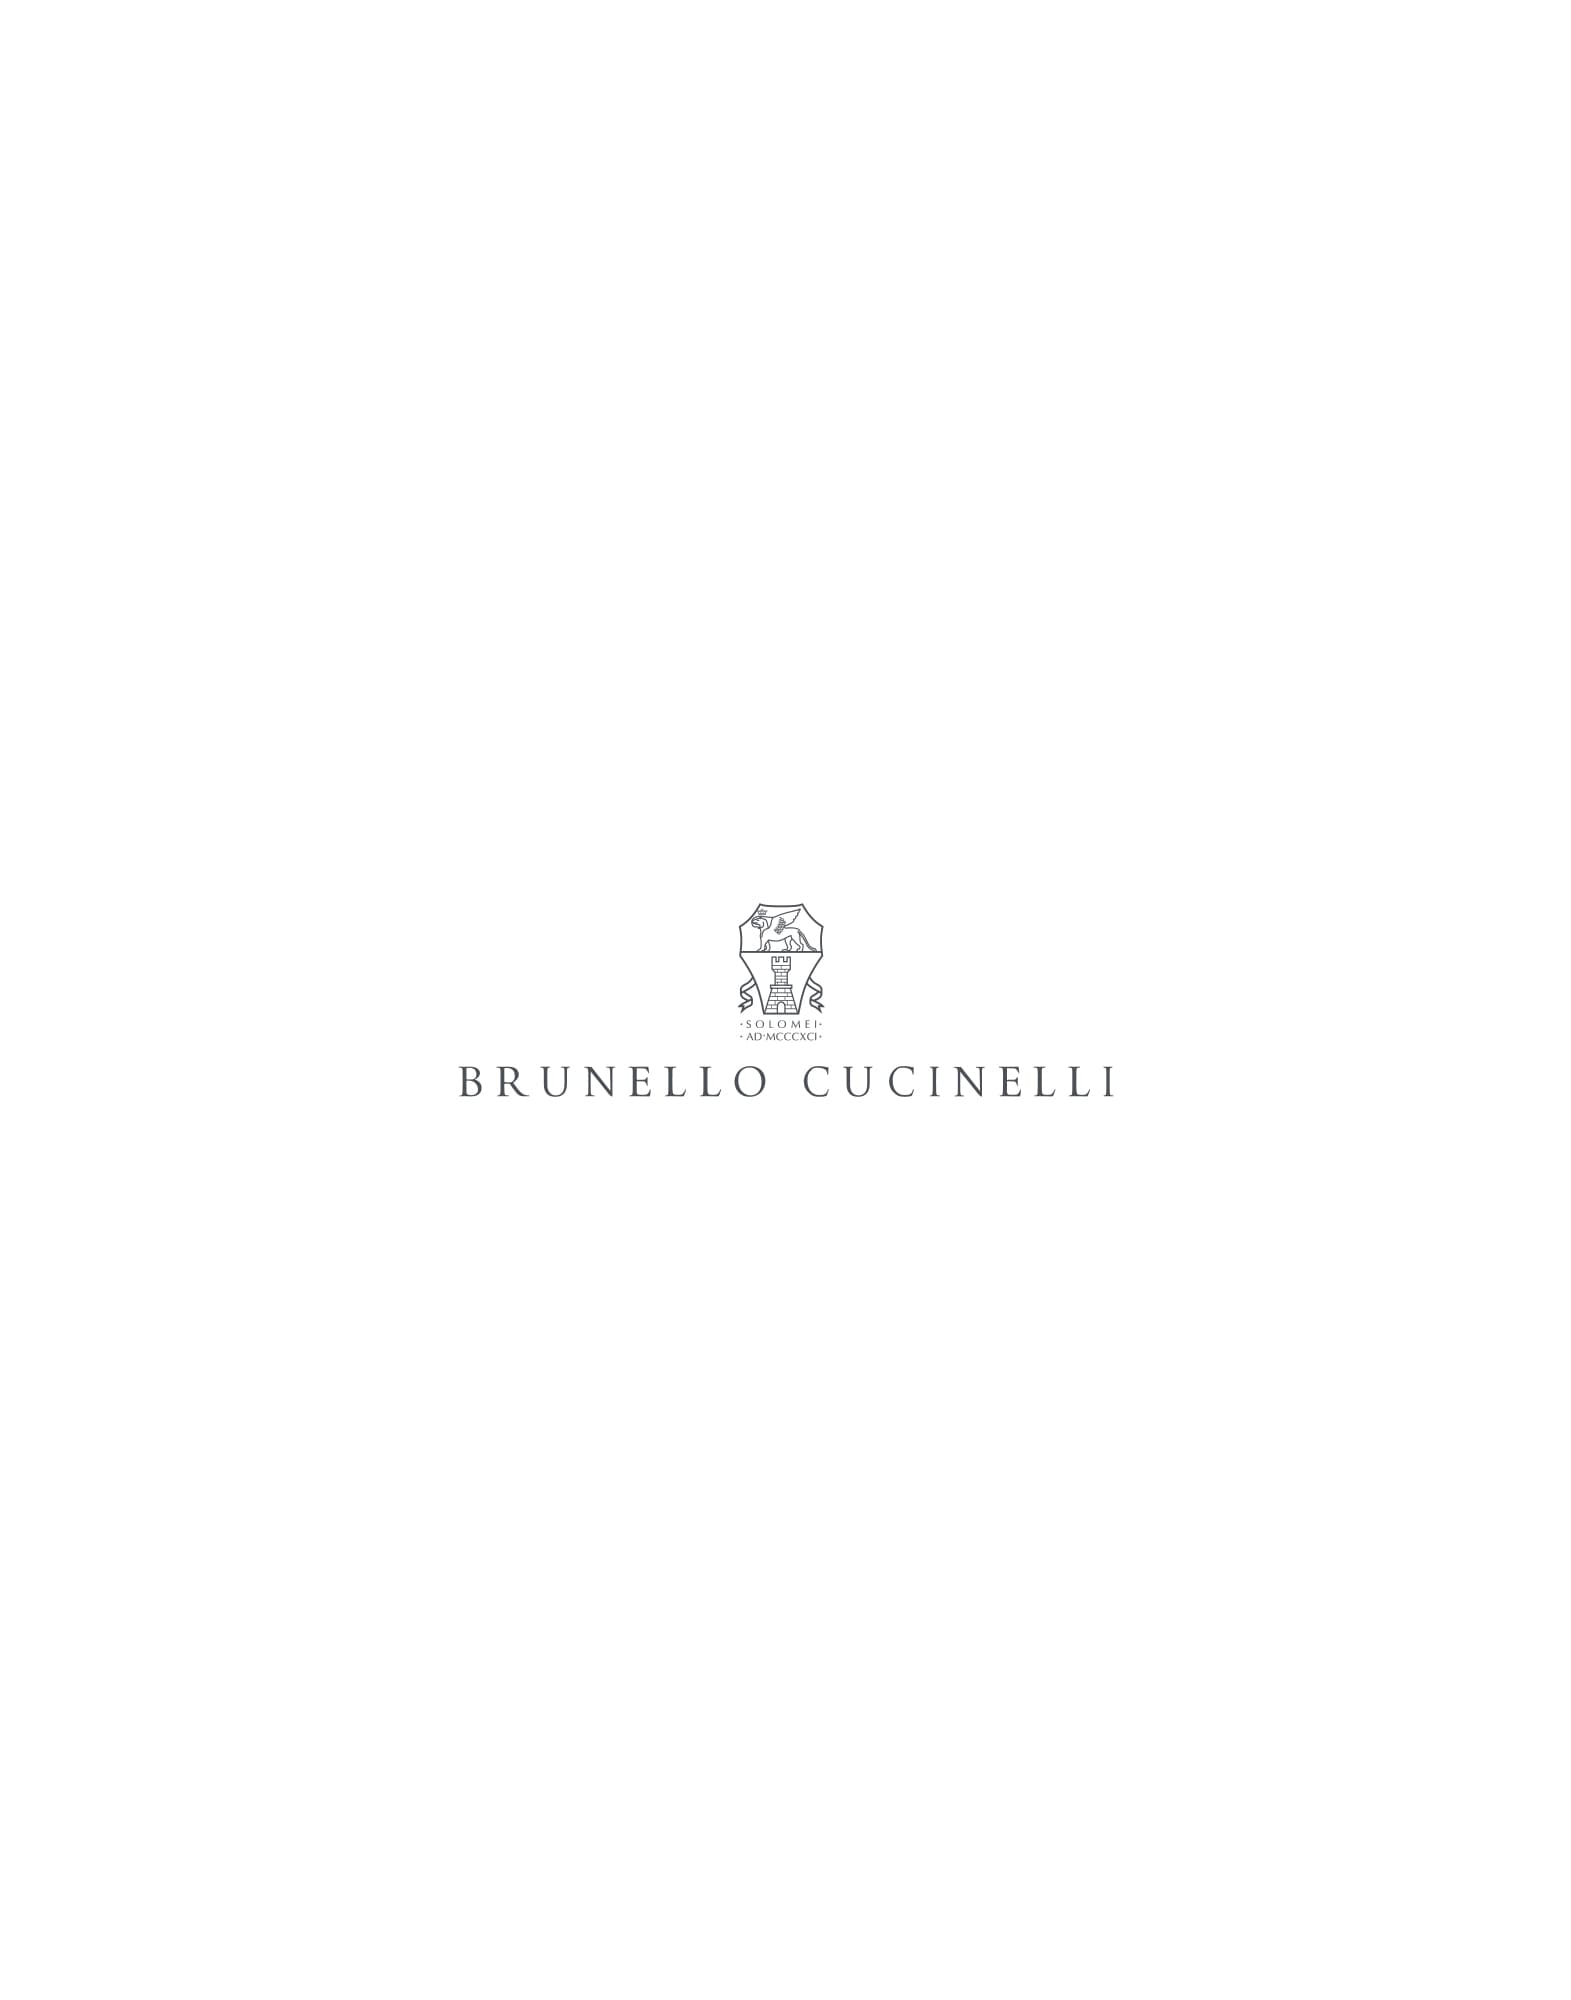 Glasflasche Walnuss Lifestyle - Brunello Cucinelli